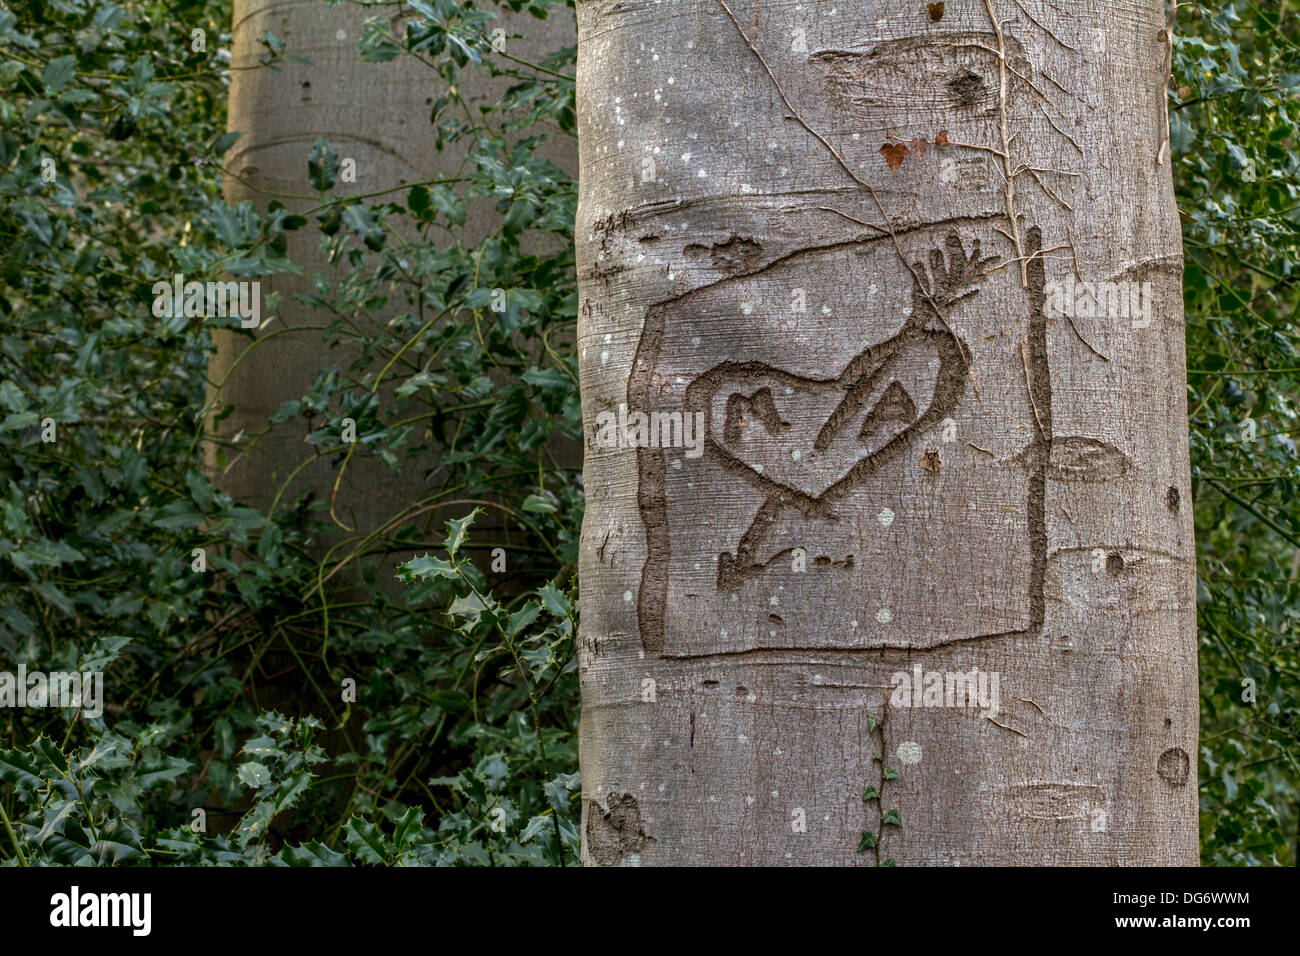 European beech (Fagus sylvatica) tree with love heart graffiti carved into its bark in park - Stock Image